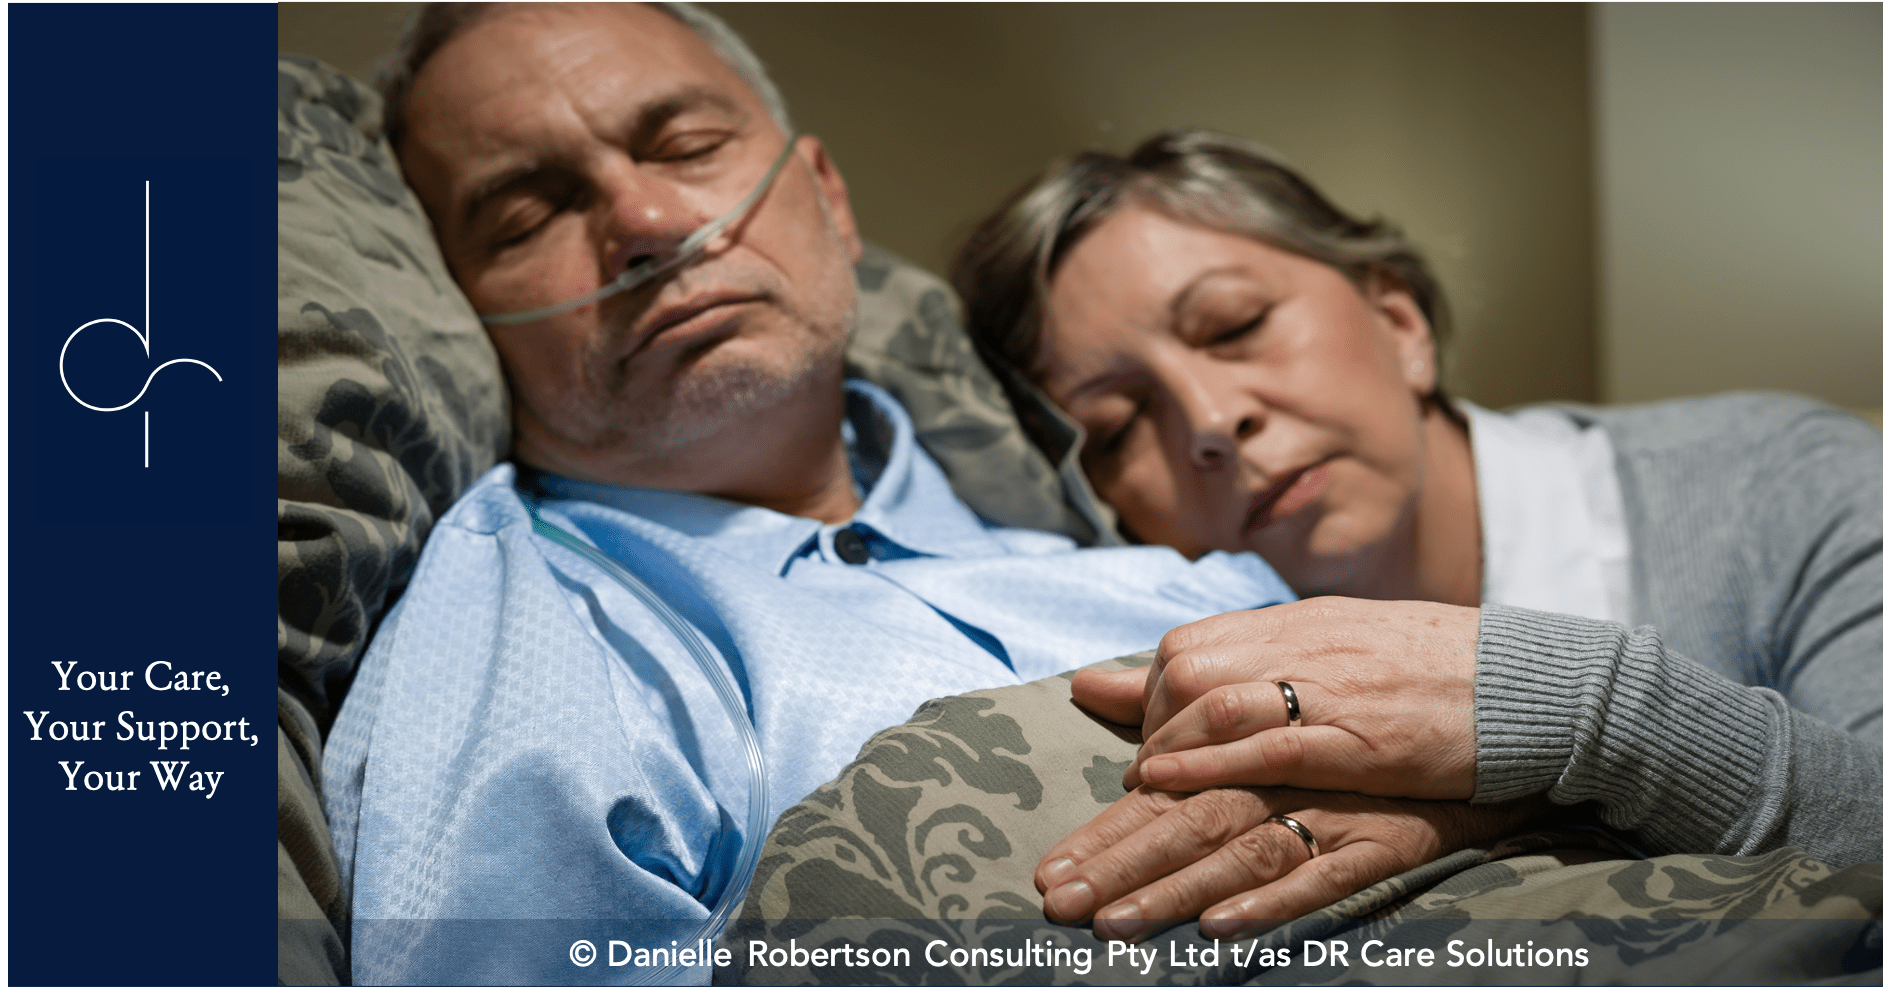 Case Study: Ensuring Your Final Wishes Are Honoured